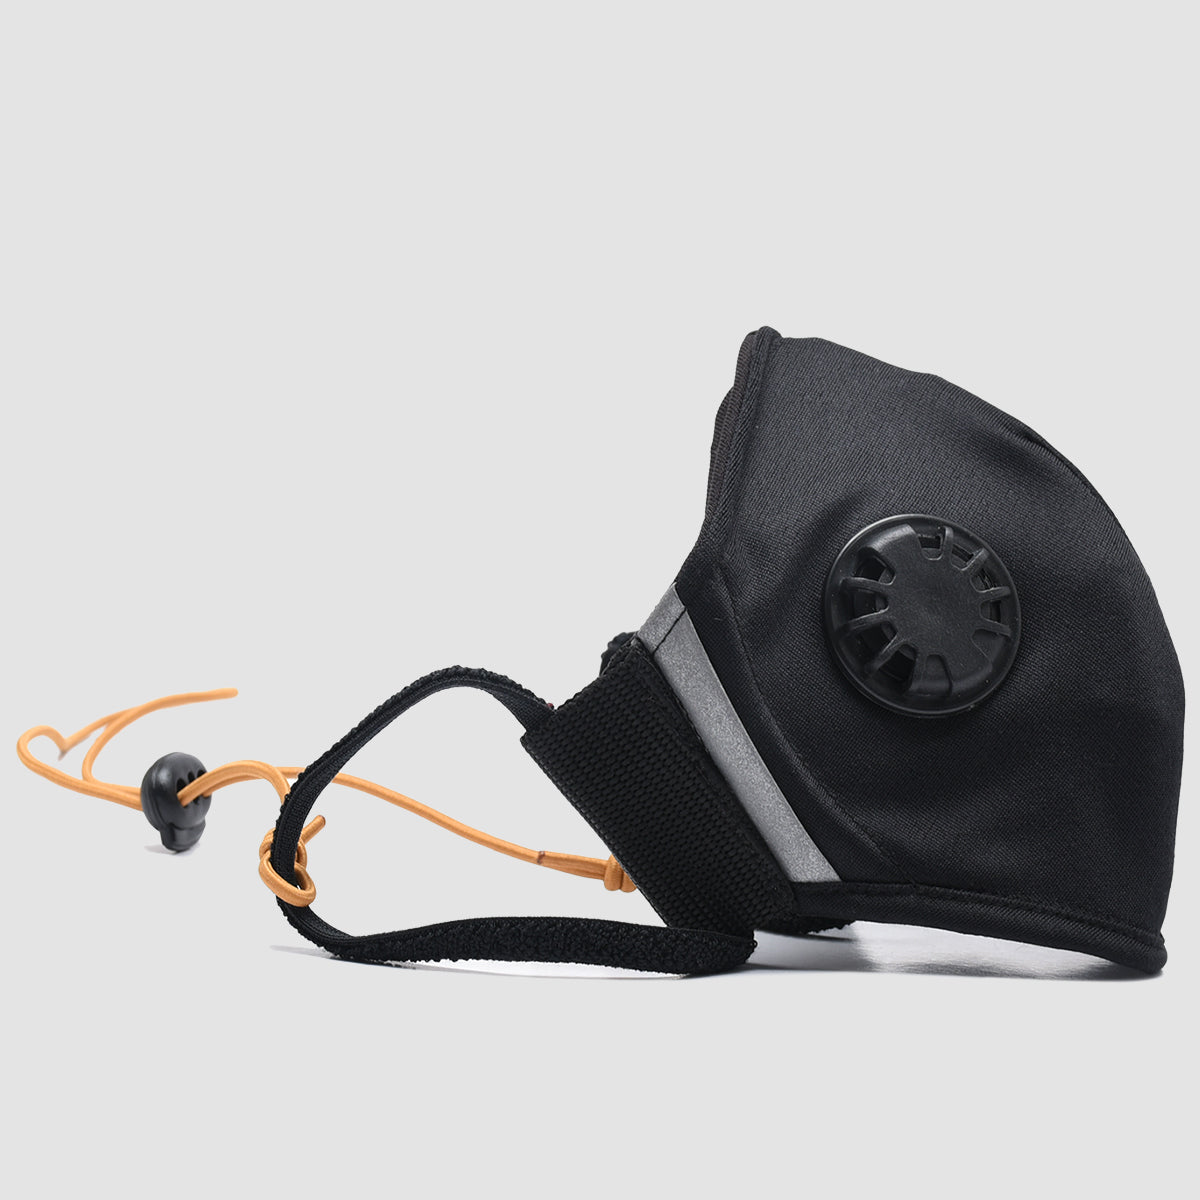 Ergo Activ Mask Jet Black